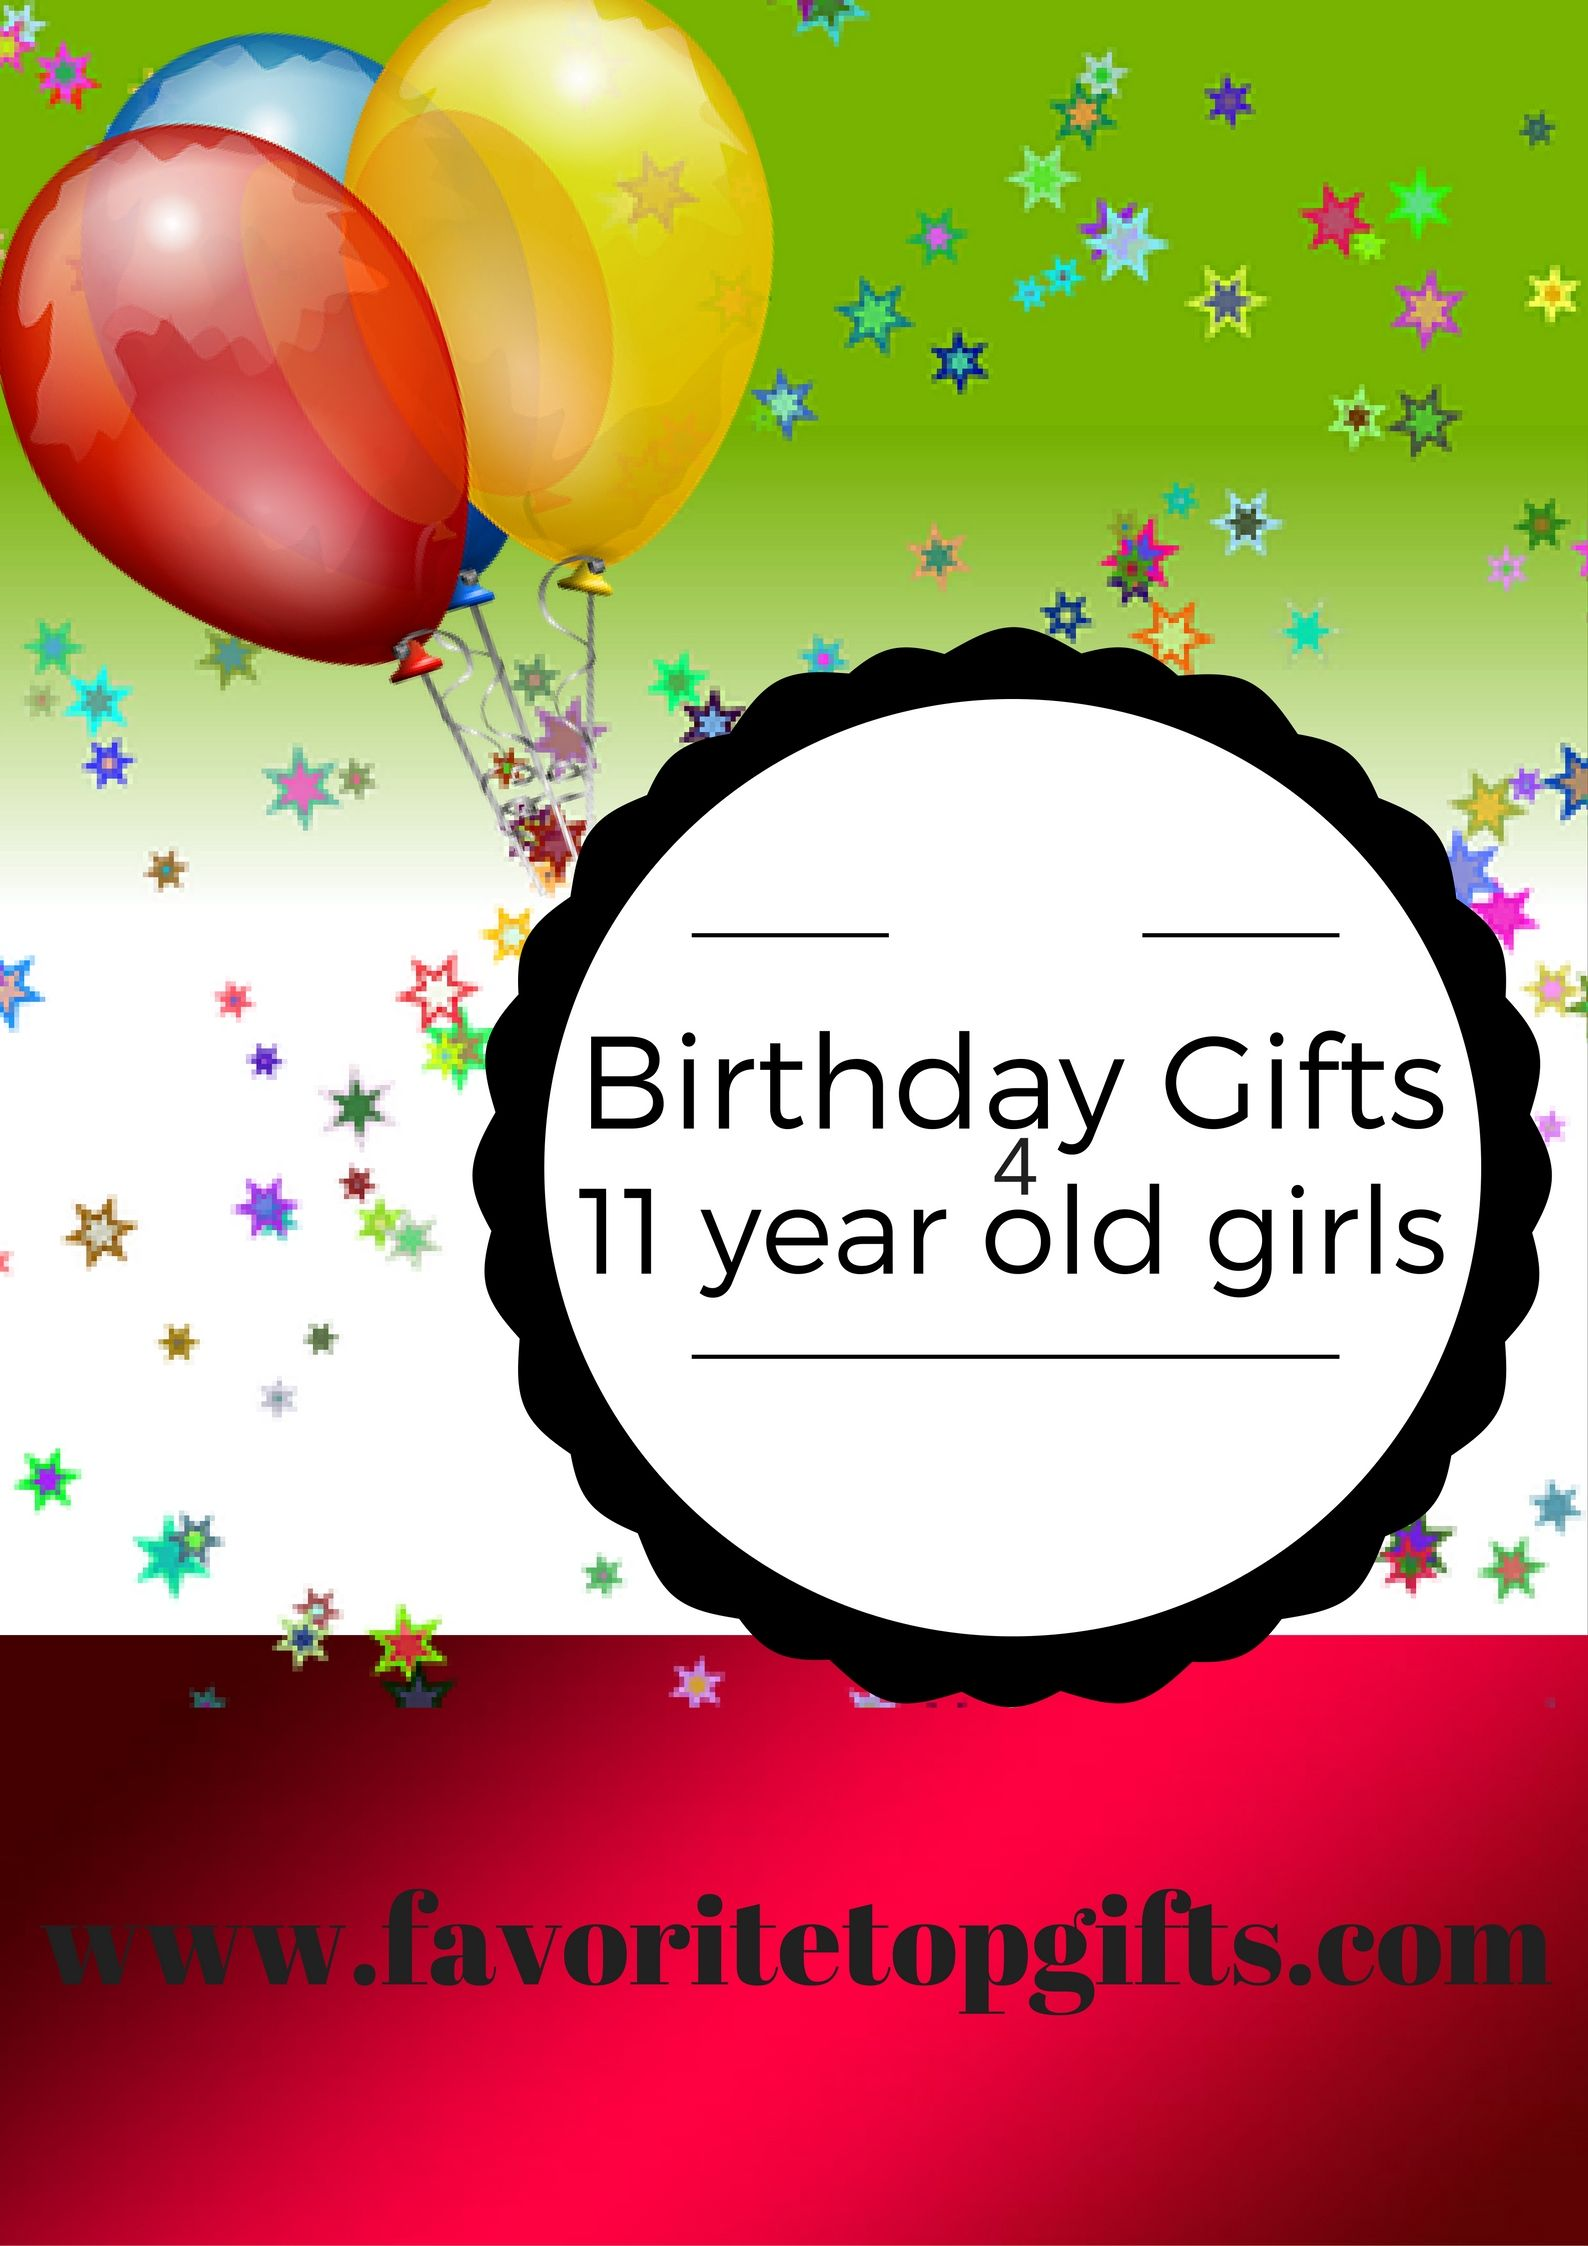 Best Gifts and Toys for 11 Year Old Girls